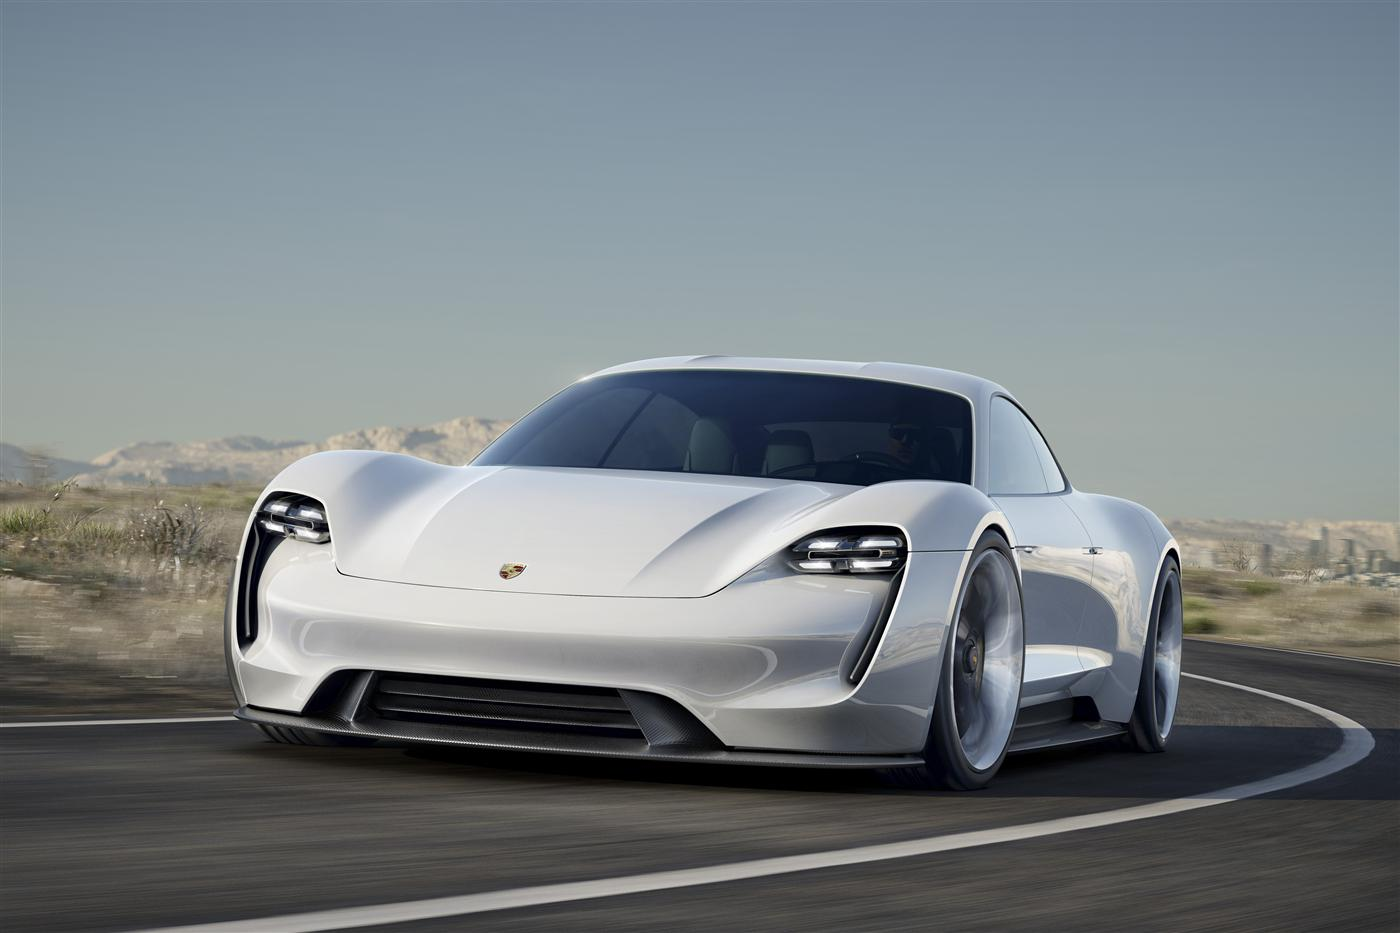 The Mission E: Porsche takes on Tesla 1